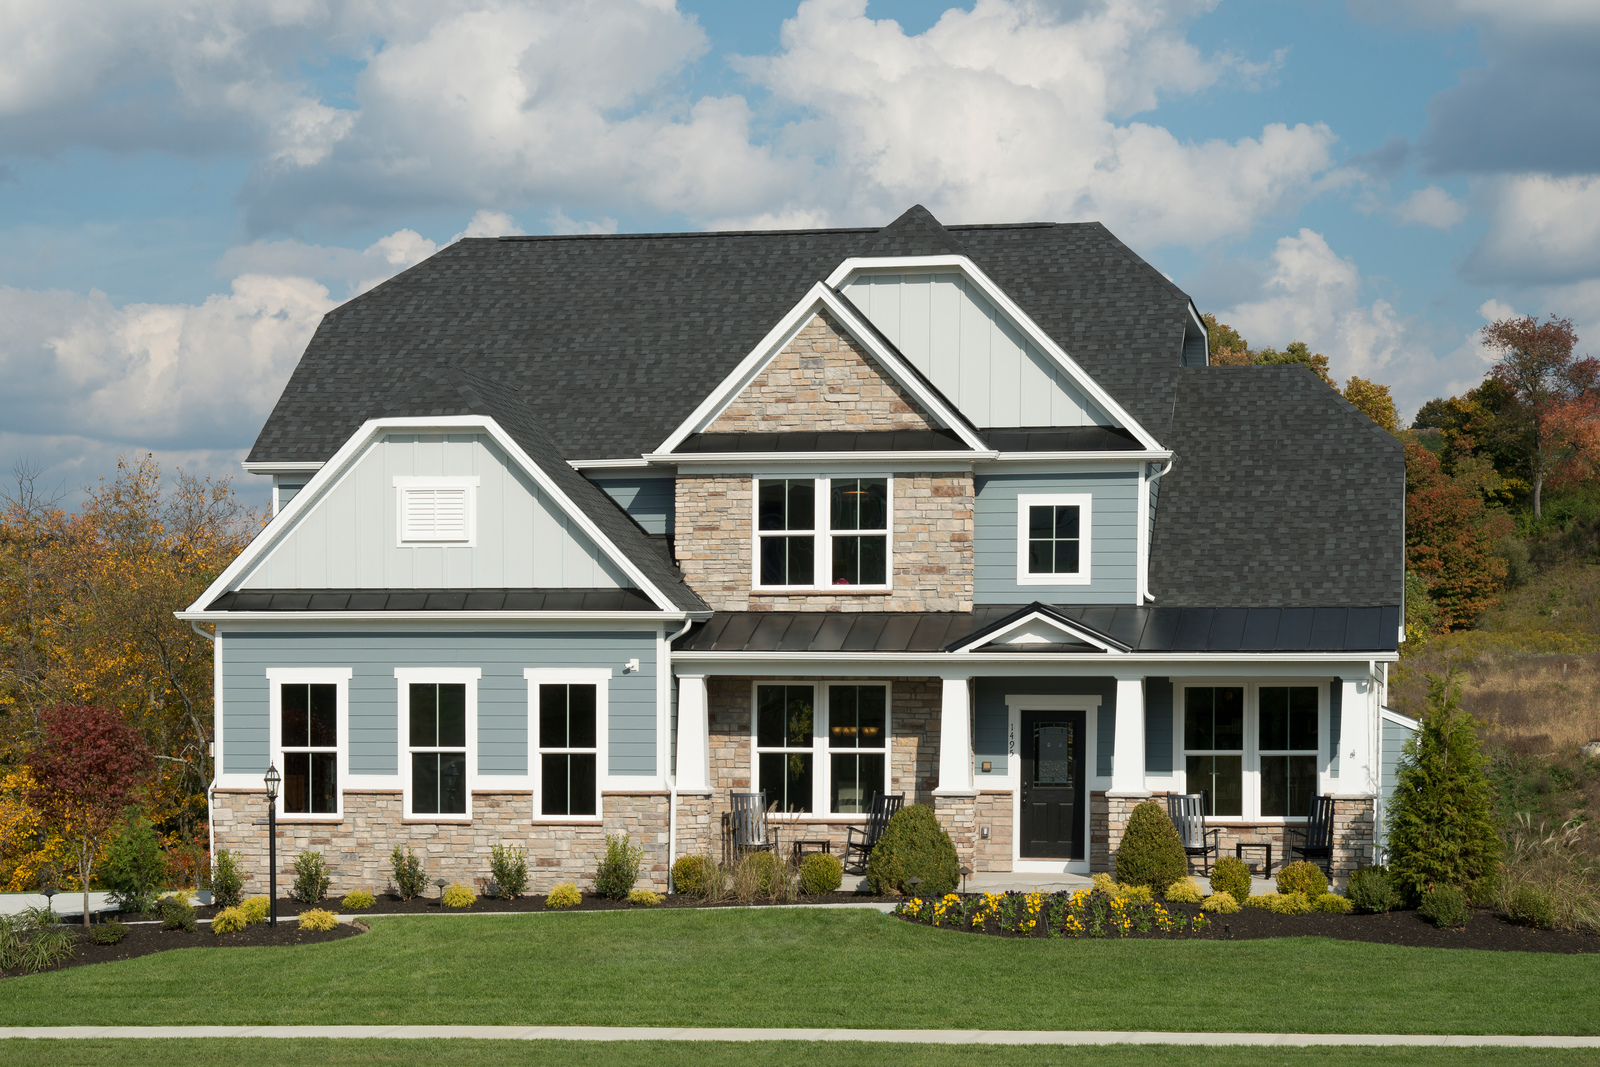 New Bateman Home Model At Emerald Fields Pine Township In Pa Heartland Homes